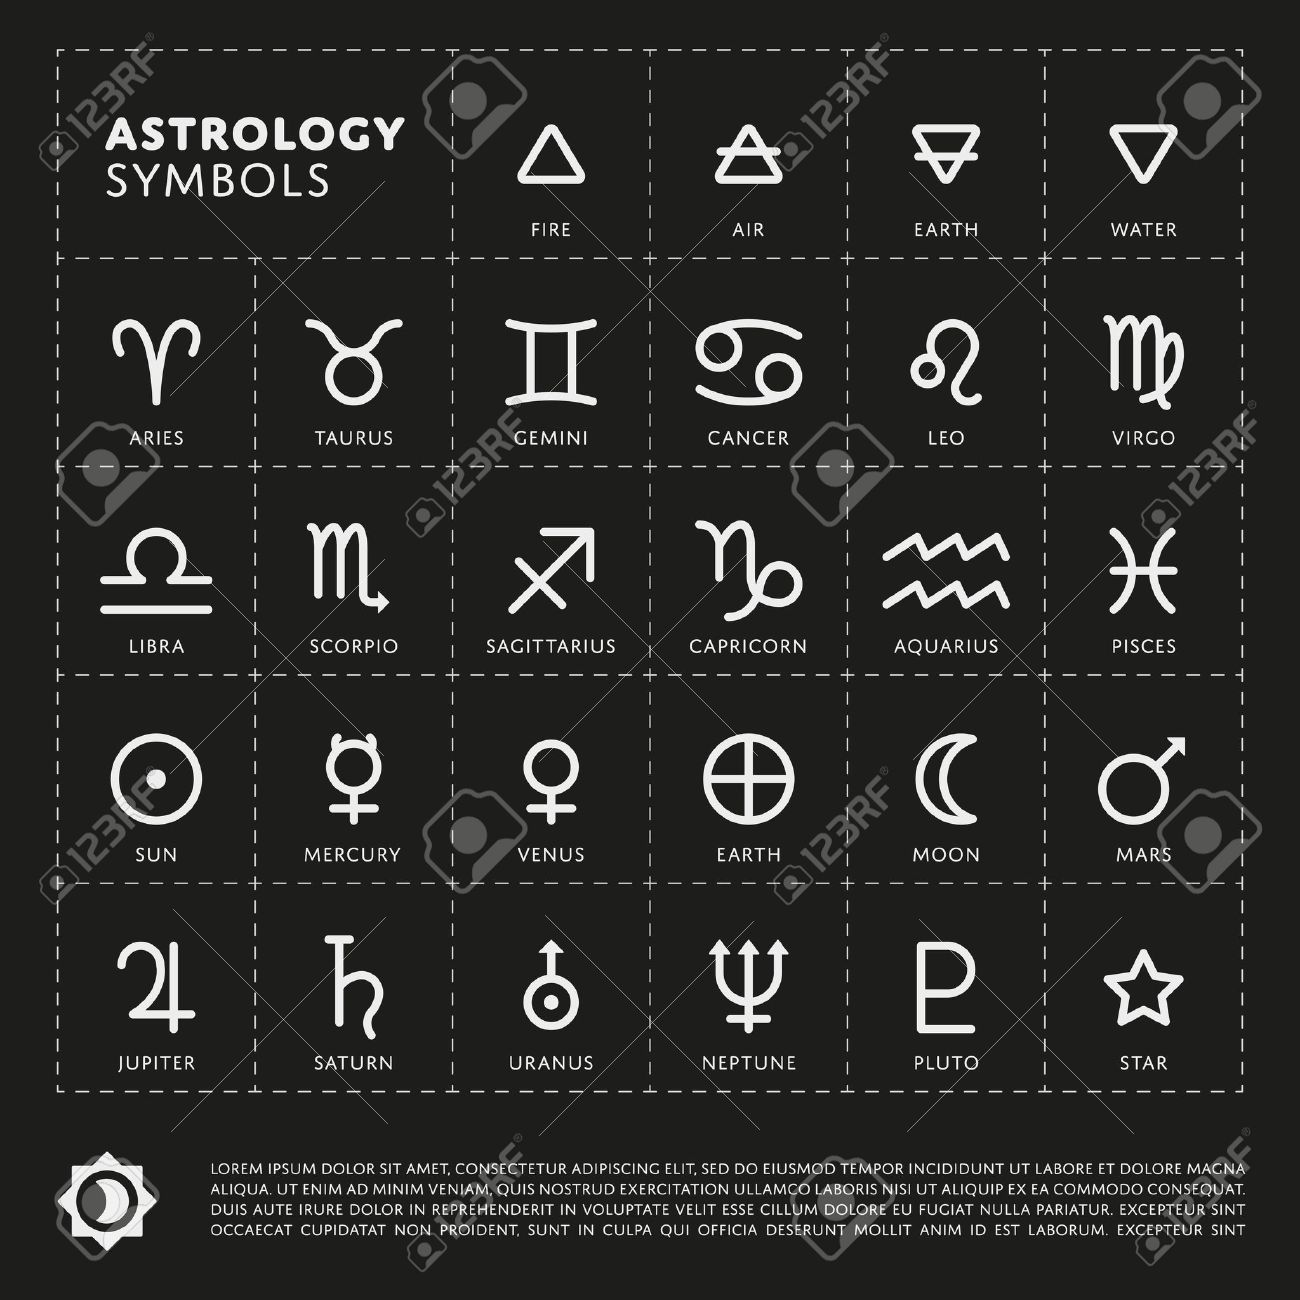 Vector astrology signs of the zodiac planet the solar system vector astrology signs of the zodiac planet the solar system four elements stock vector buycottarizona